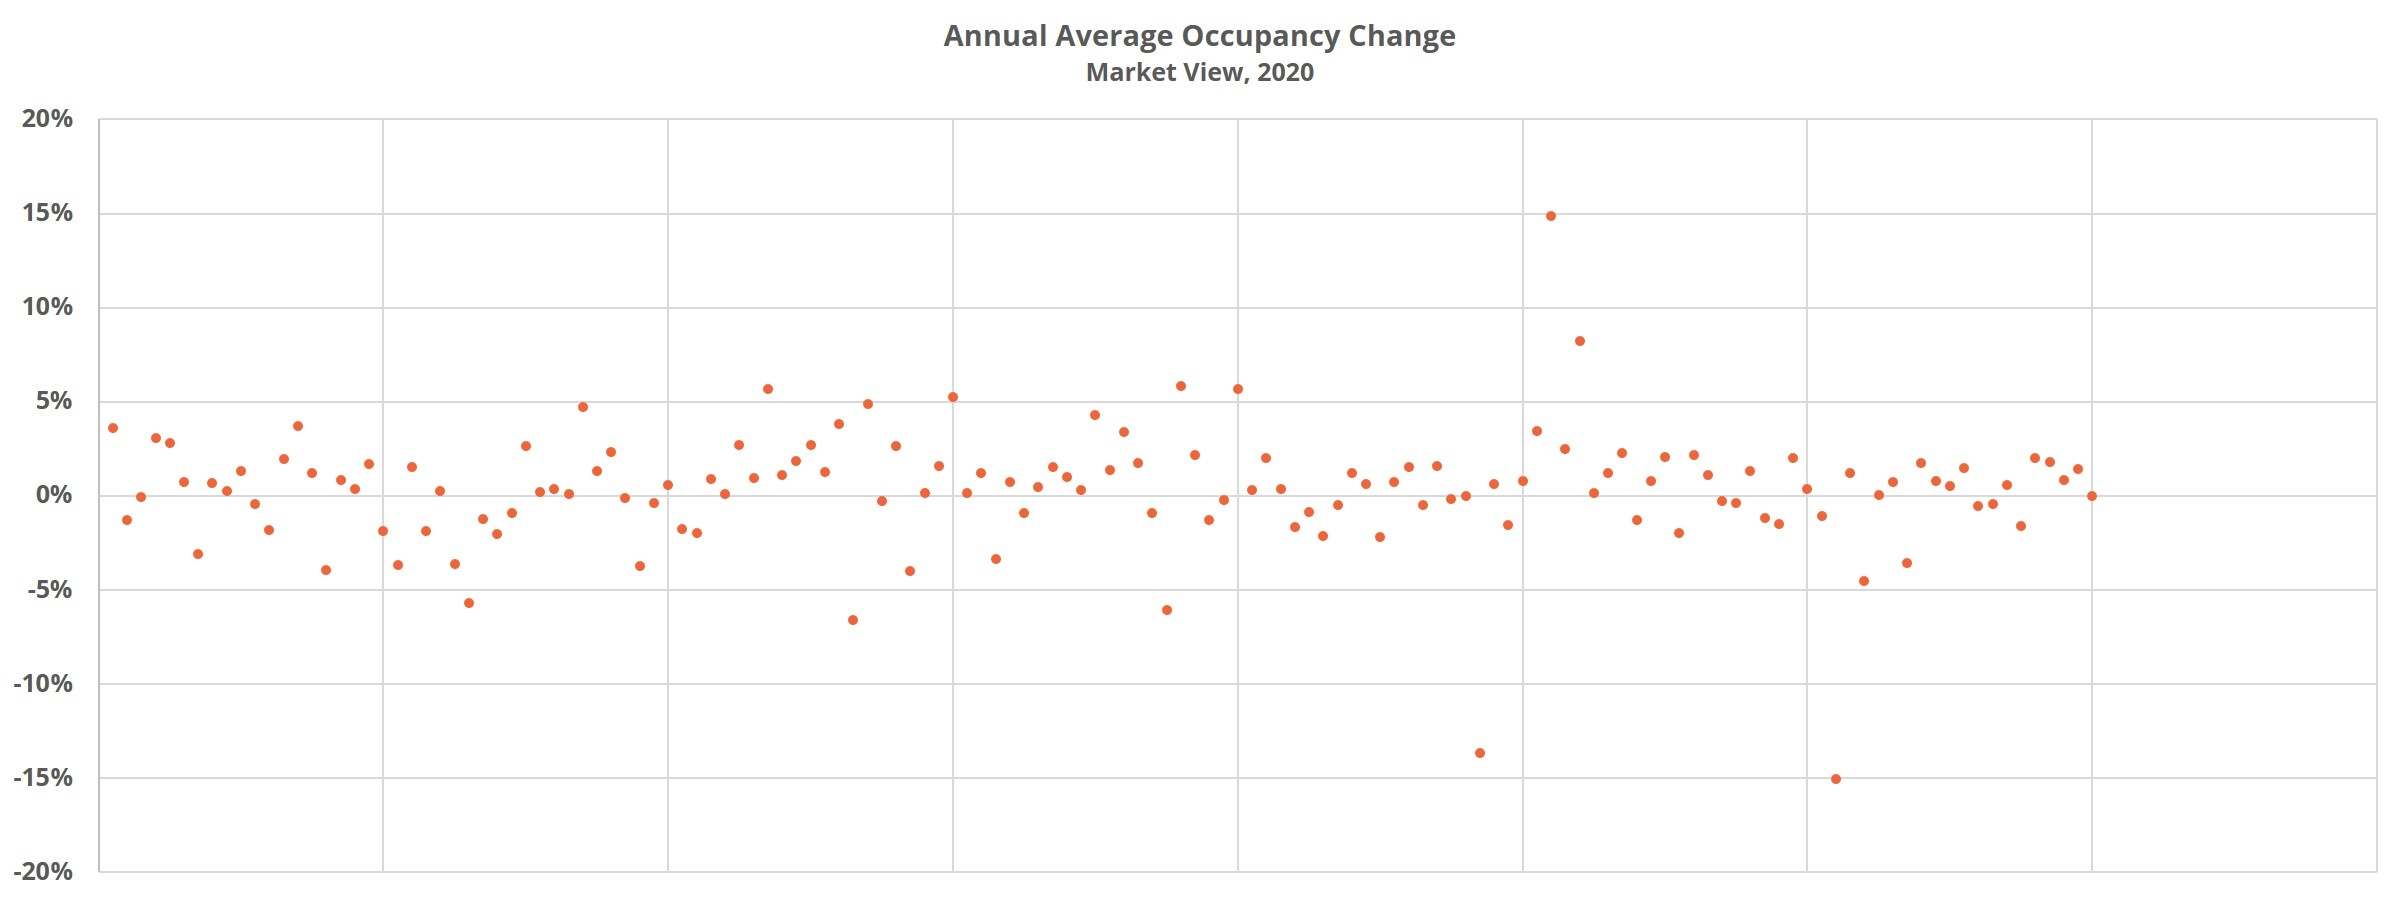 Annual Average Occupancy Change